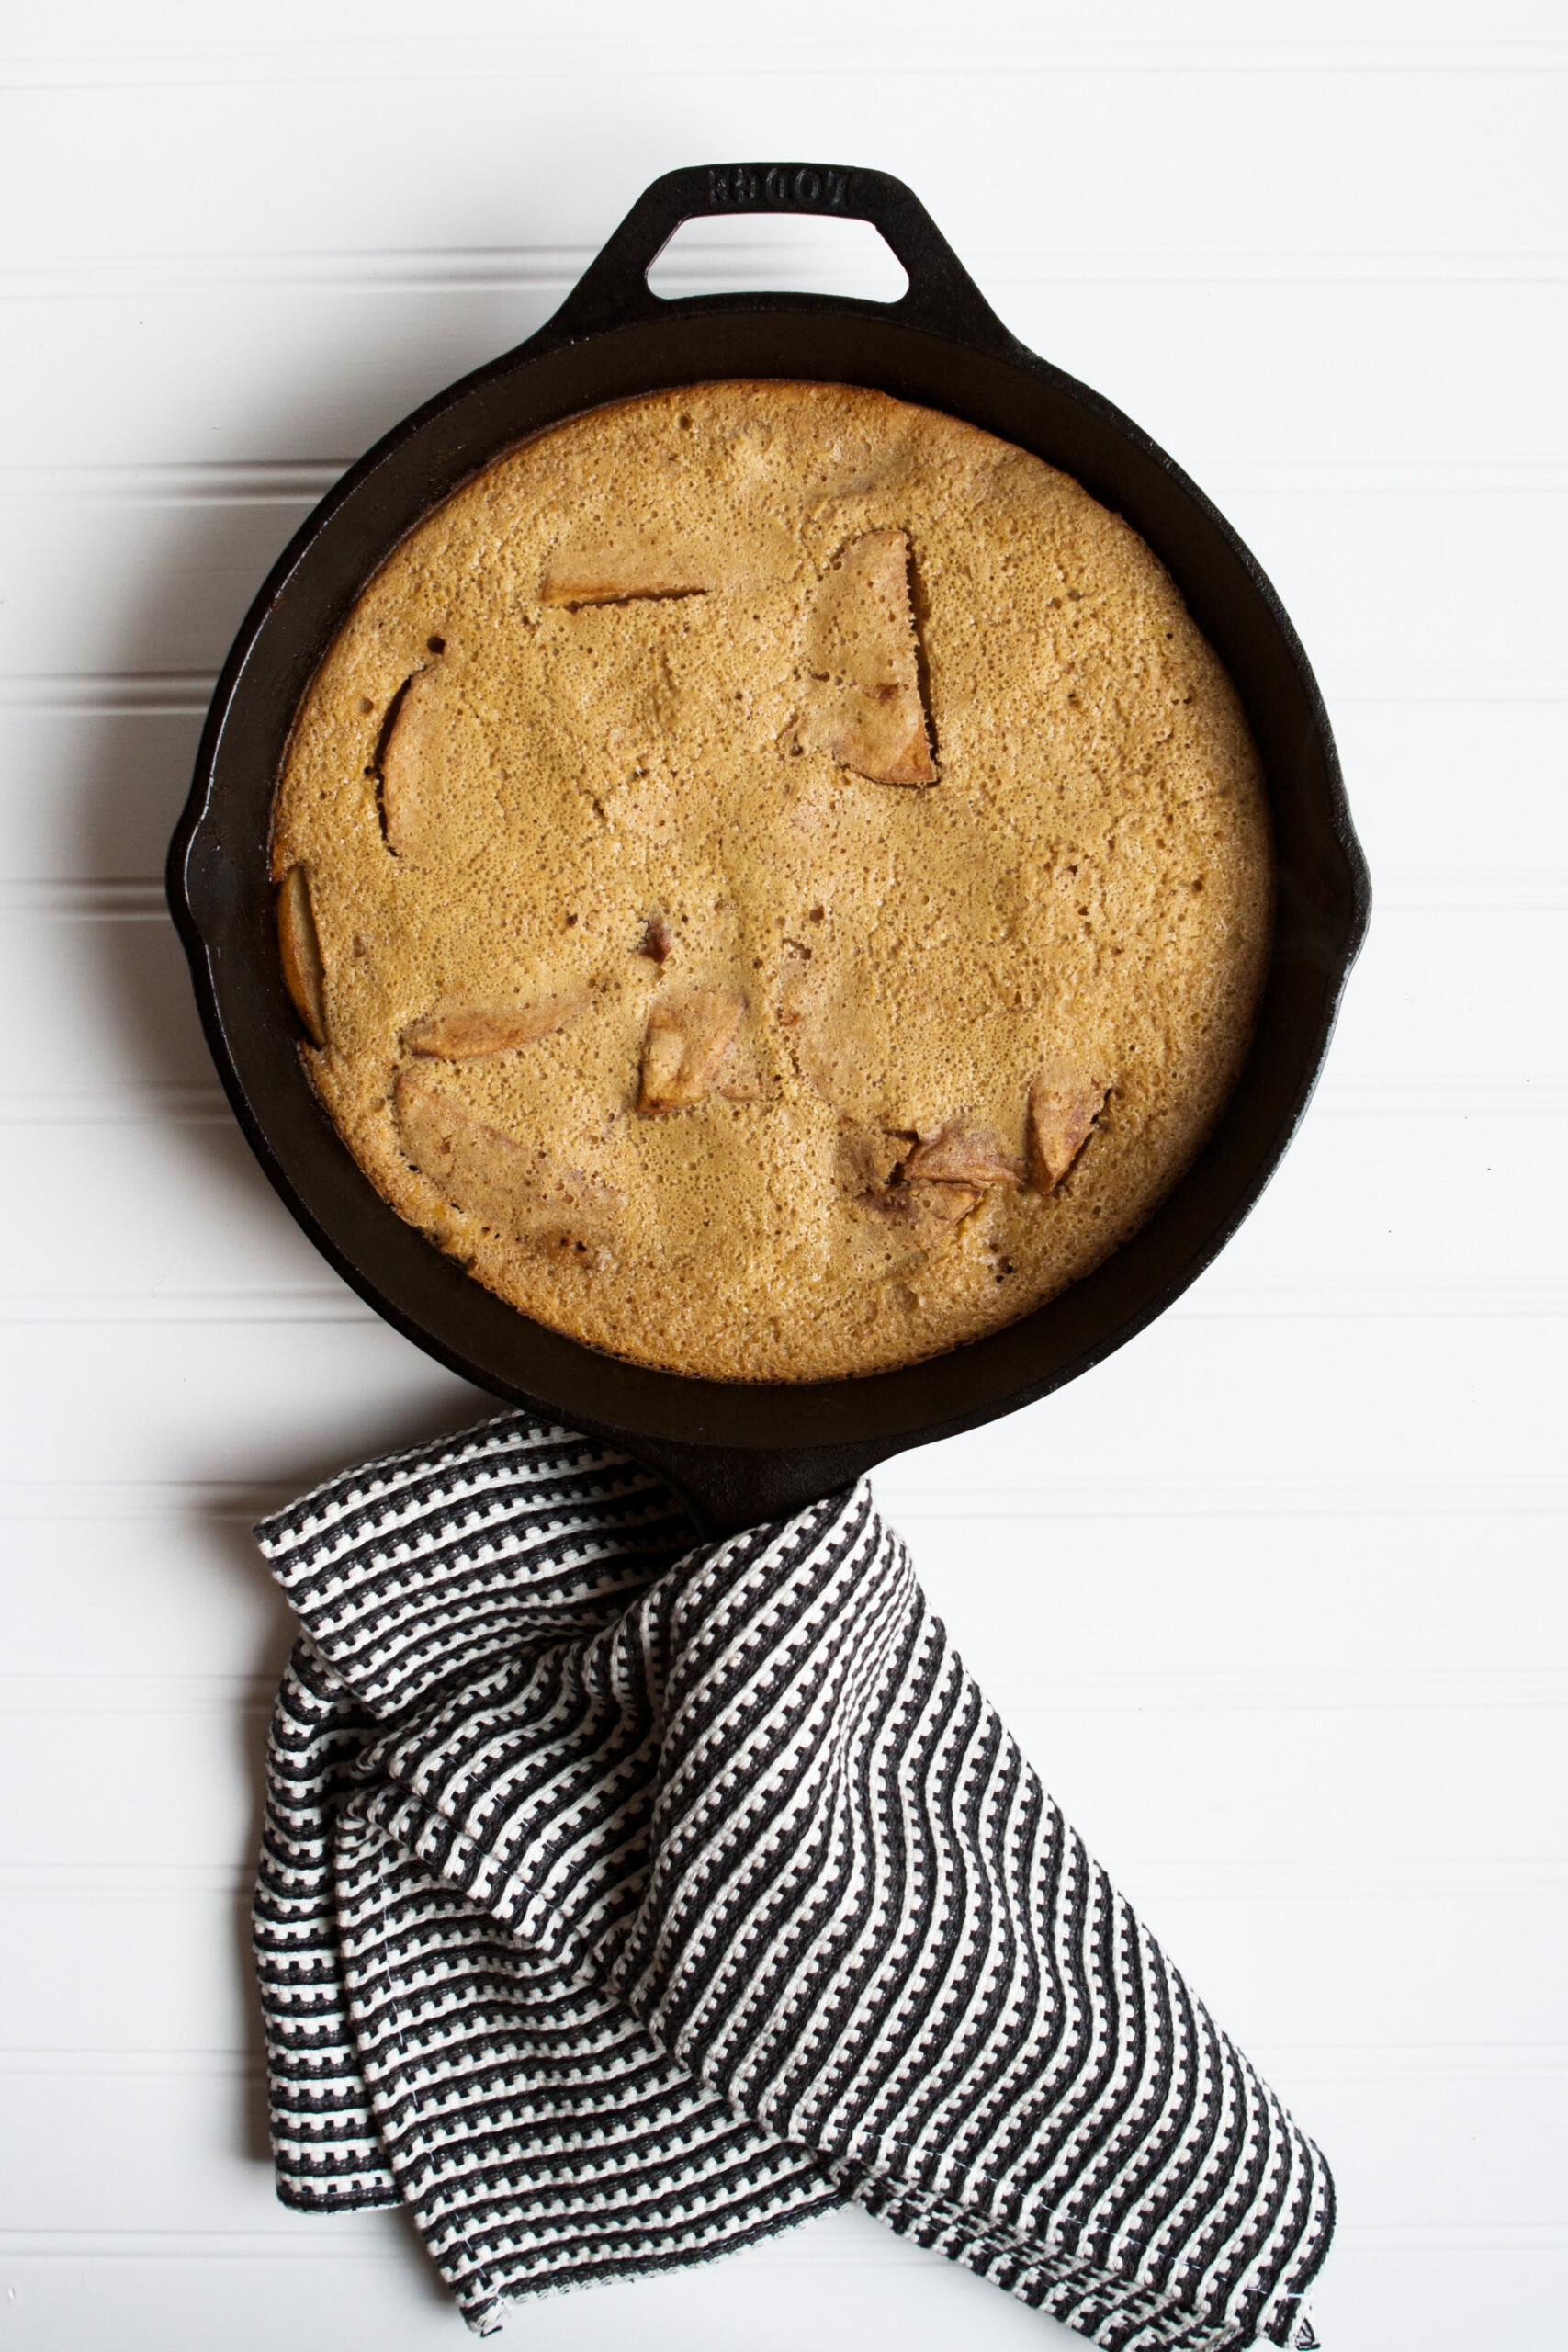 Photograph of puffed pancake in a cast iron skillet